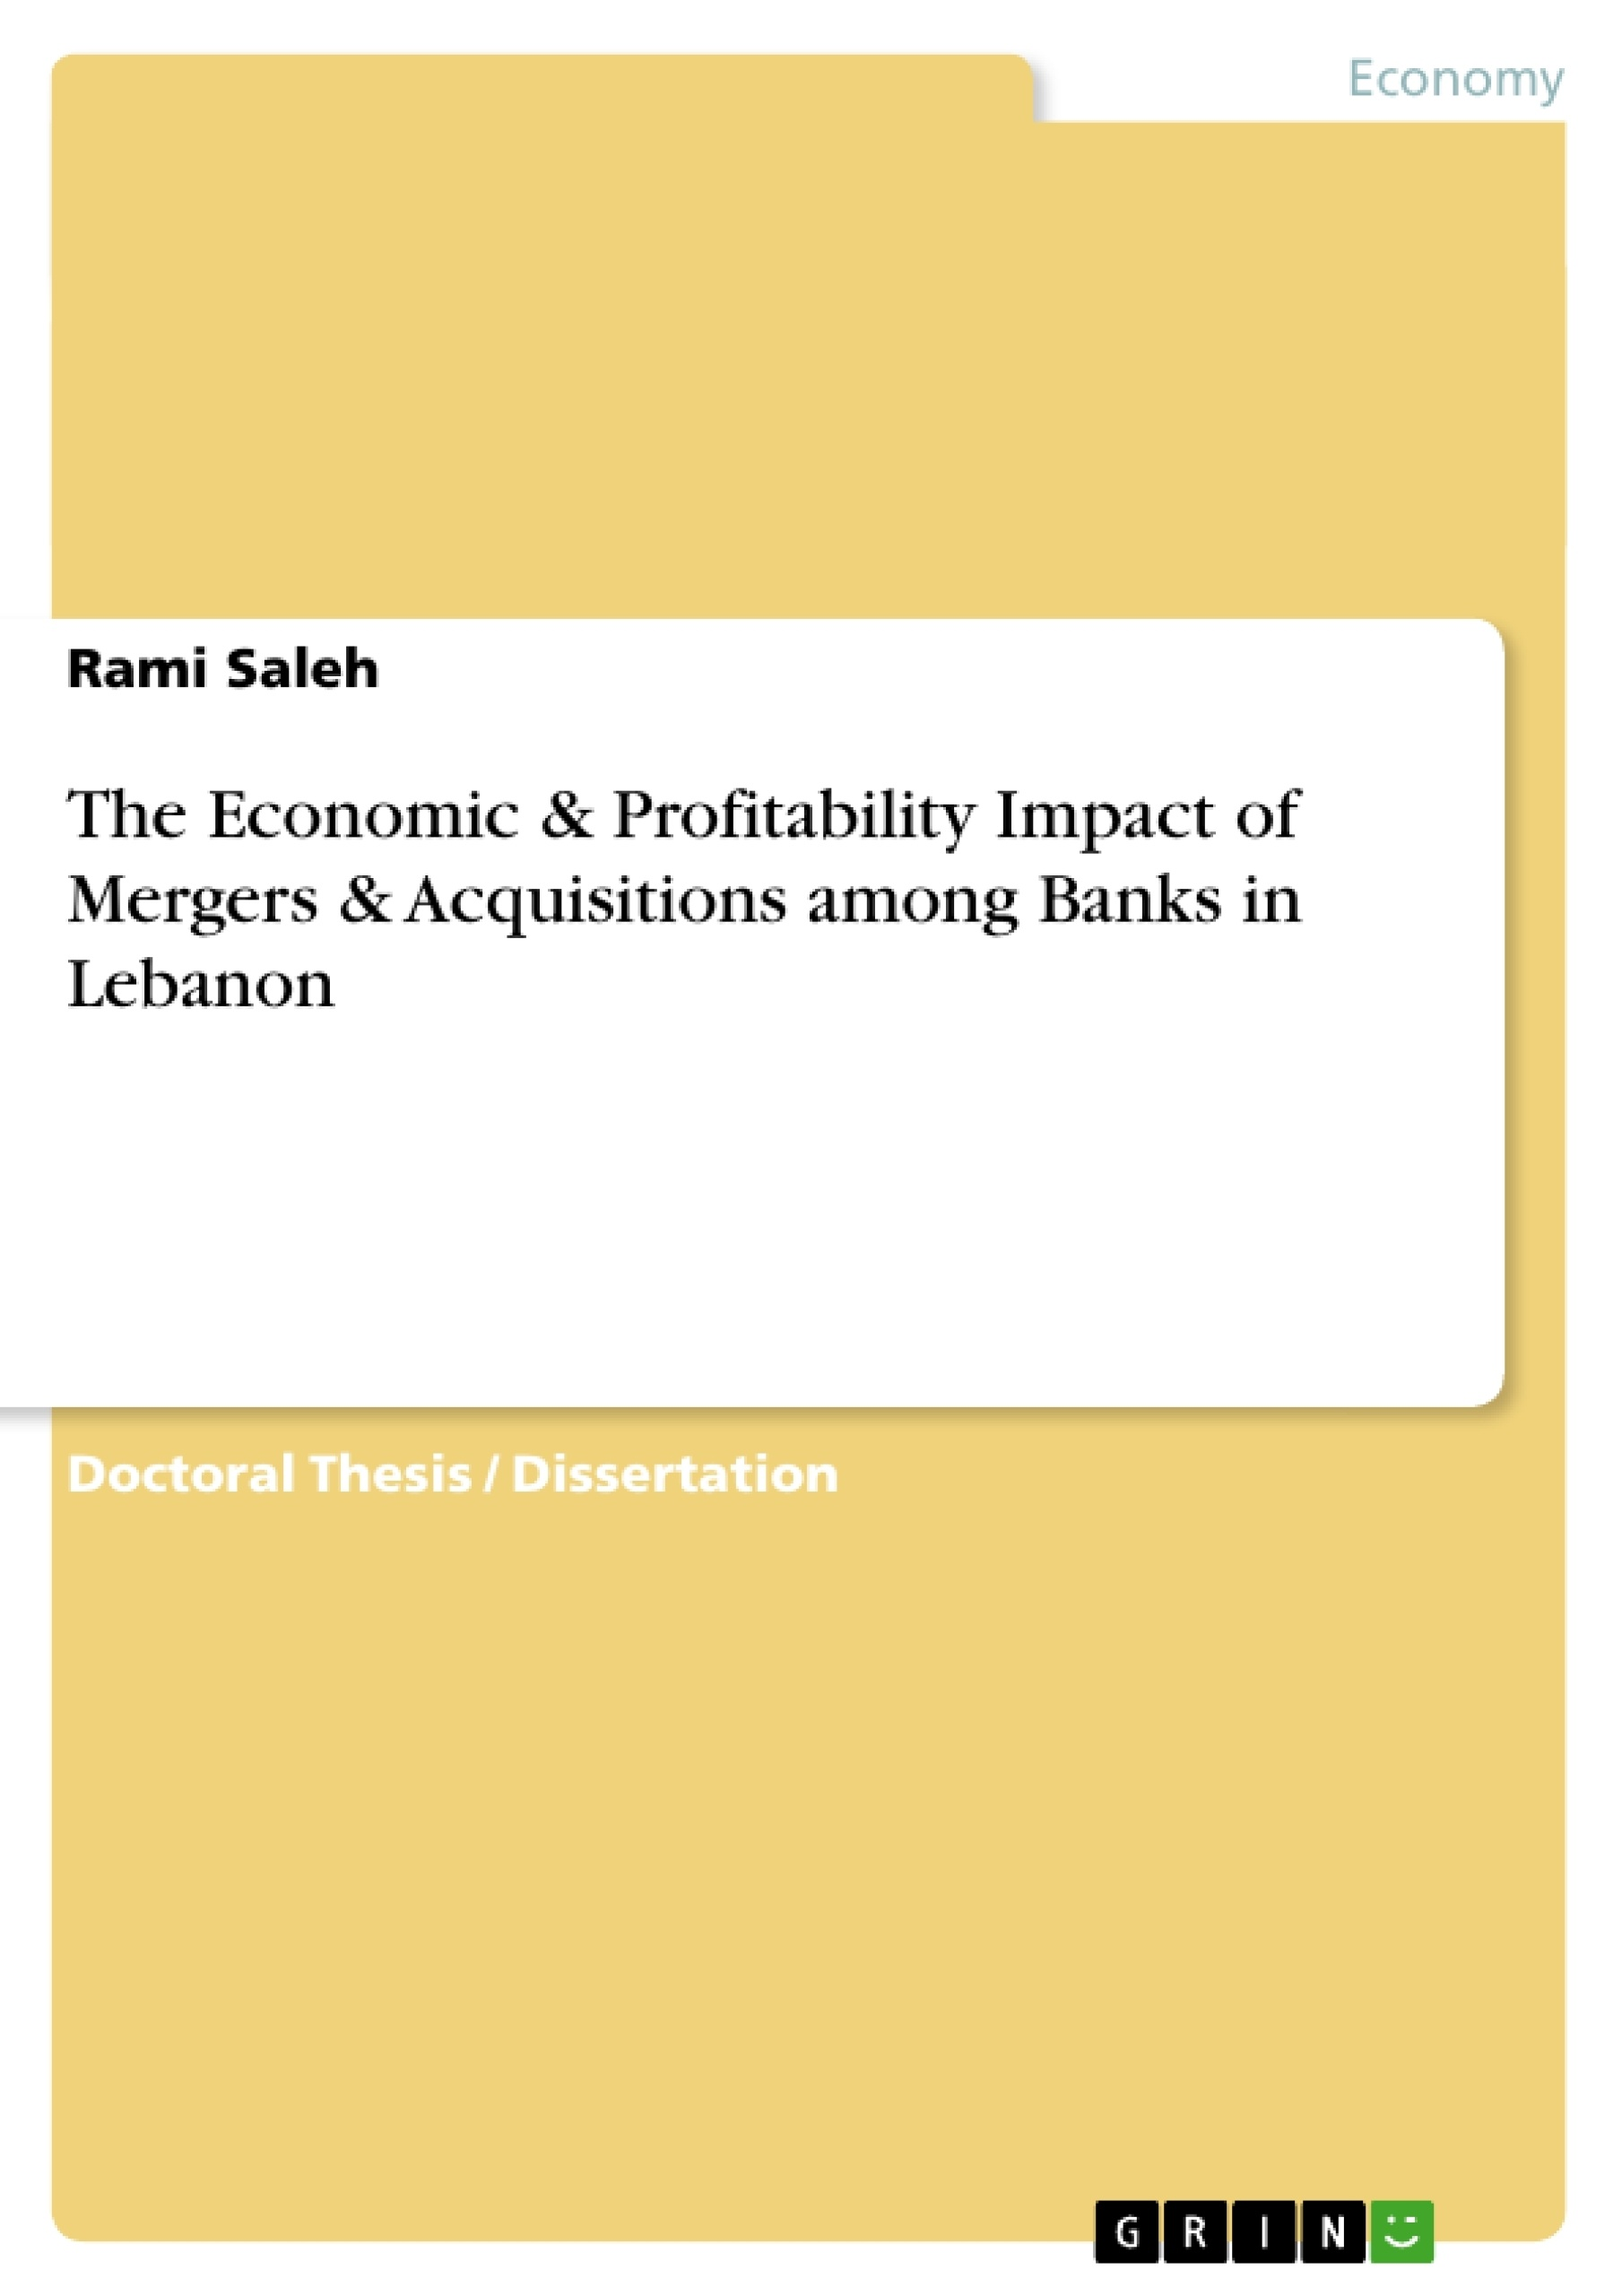 Dissertation on mergers and acquisitions